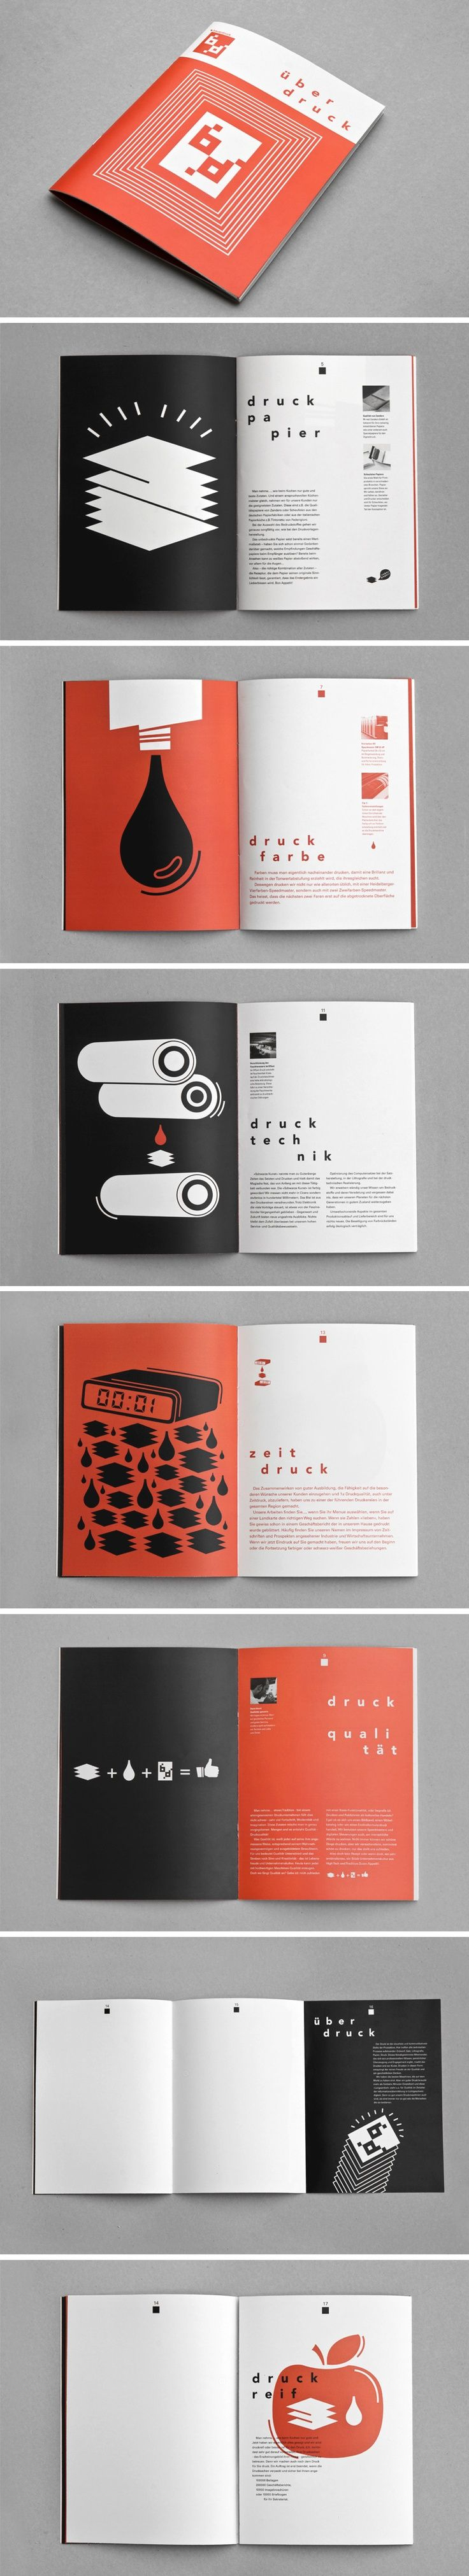 Heres some ideas of how you can use colour, style and format to provide continuity without your set of posters being all the same. [Editorial layouts by Bauerdruck print shop]  #infographics